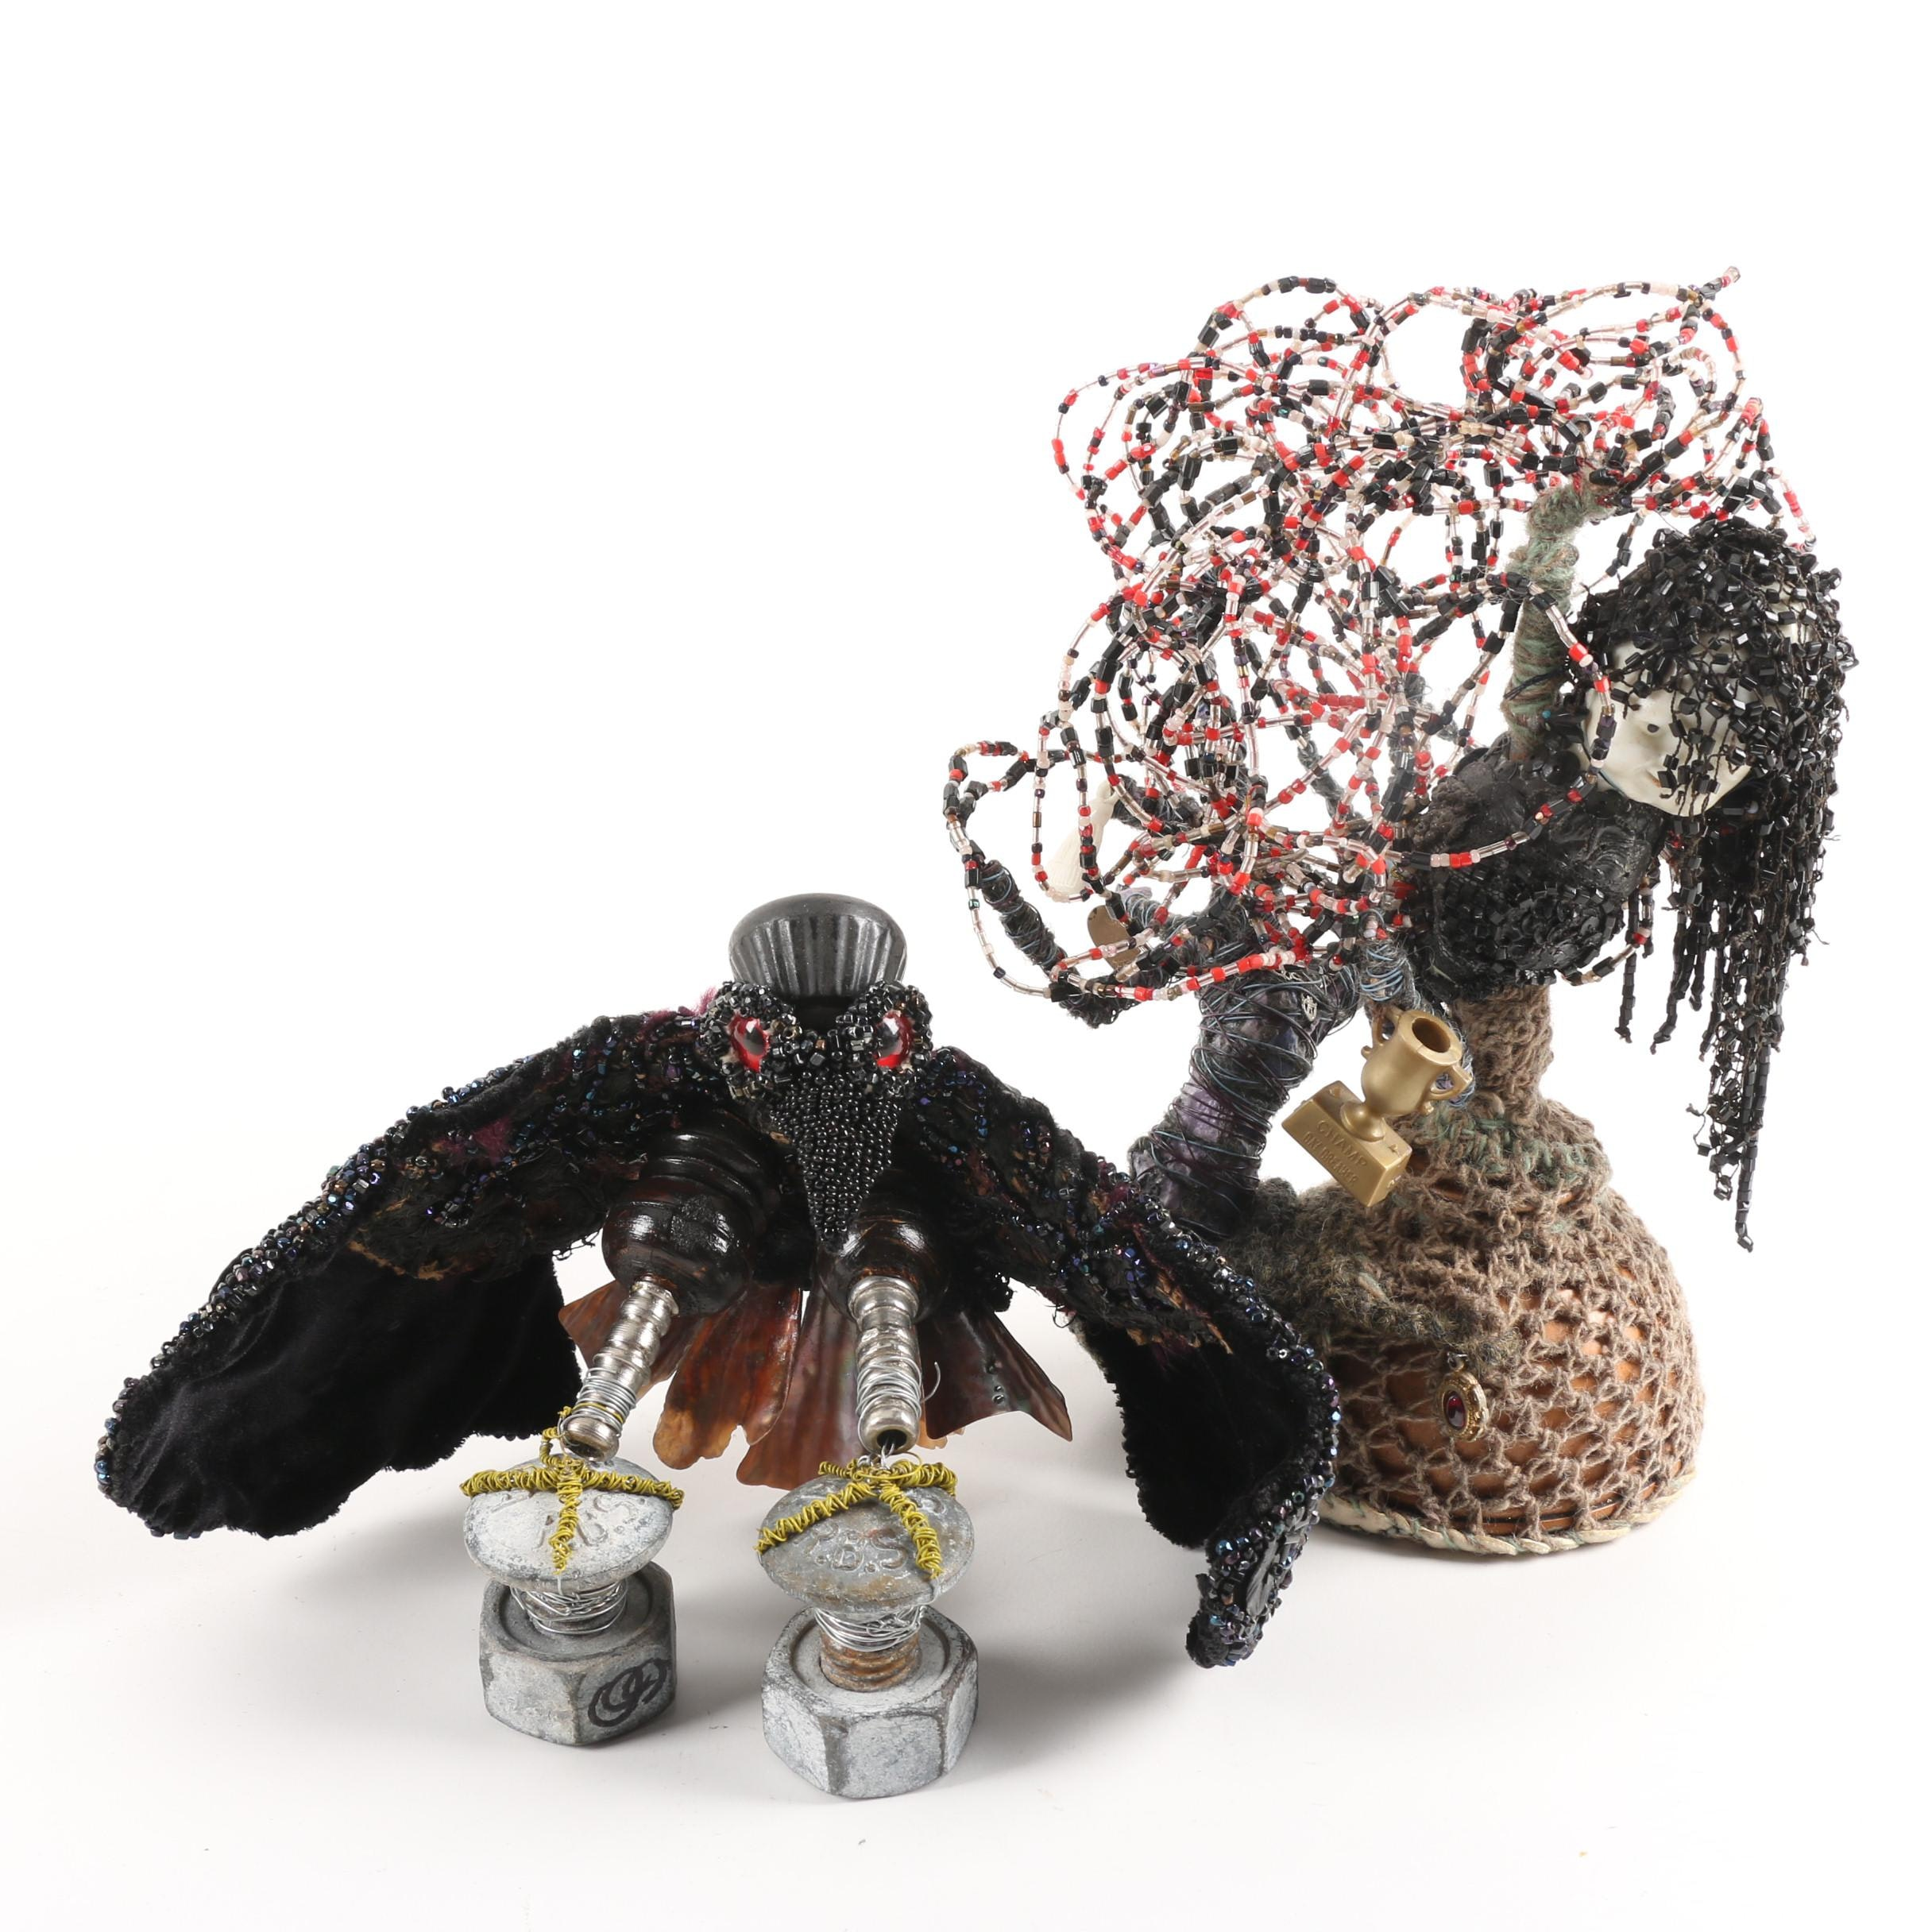 Folk Art Style Sculptures Featuring Beaded Crow with Shell Feathers and More